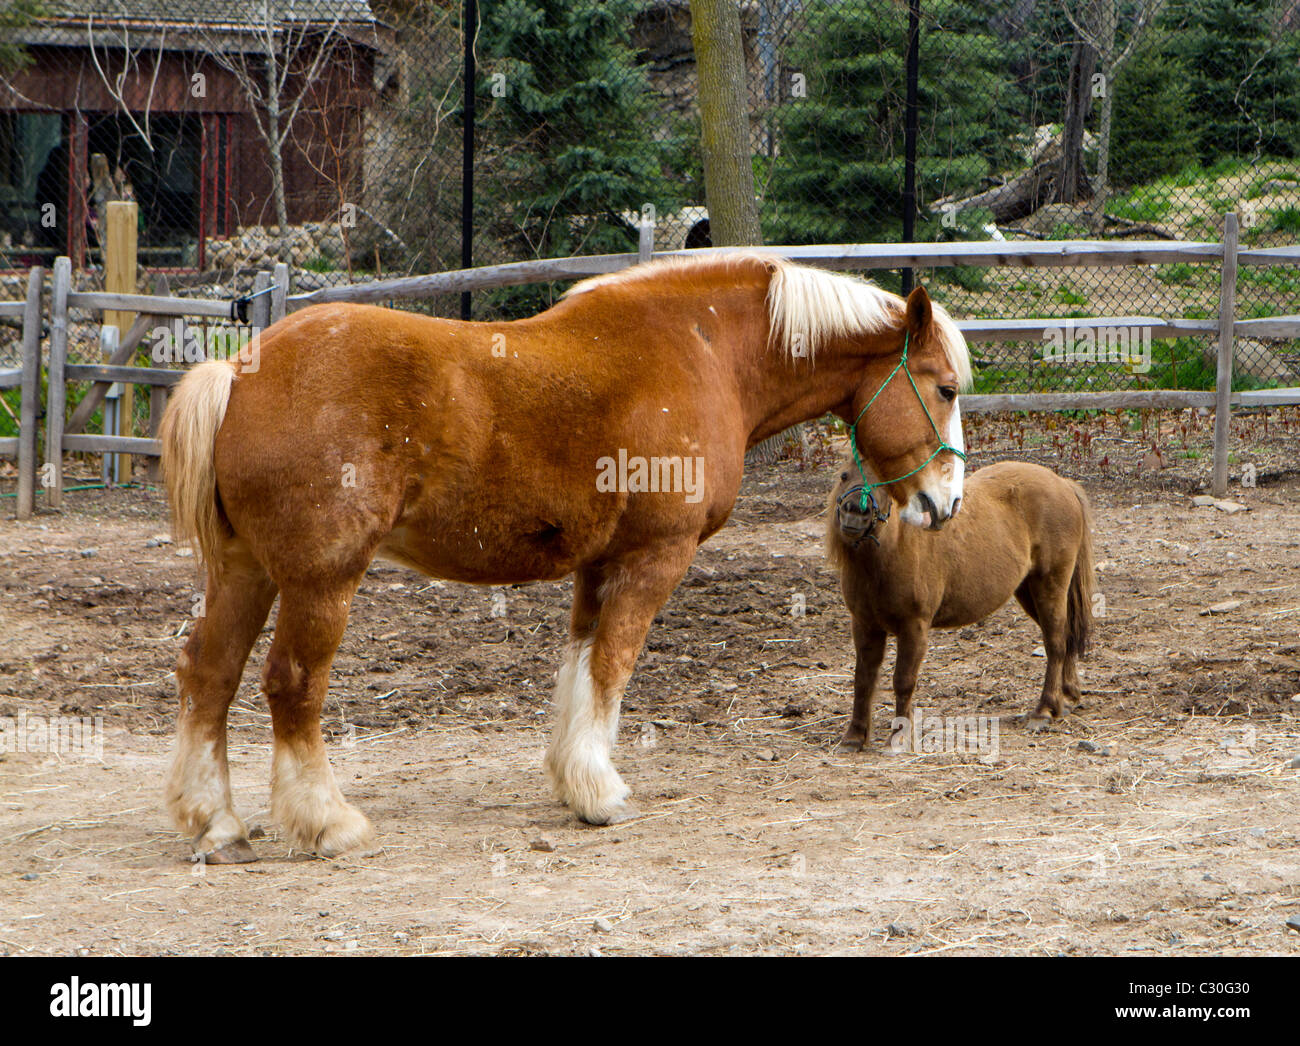 A large horse and a small pony in a coral pen Stock Photo